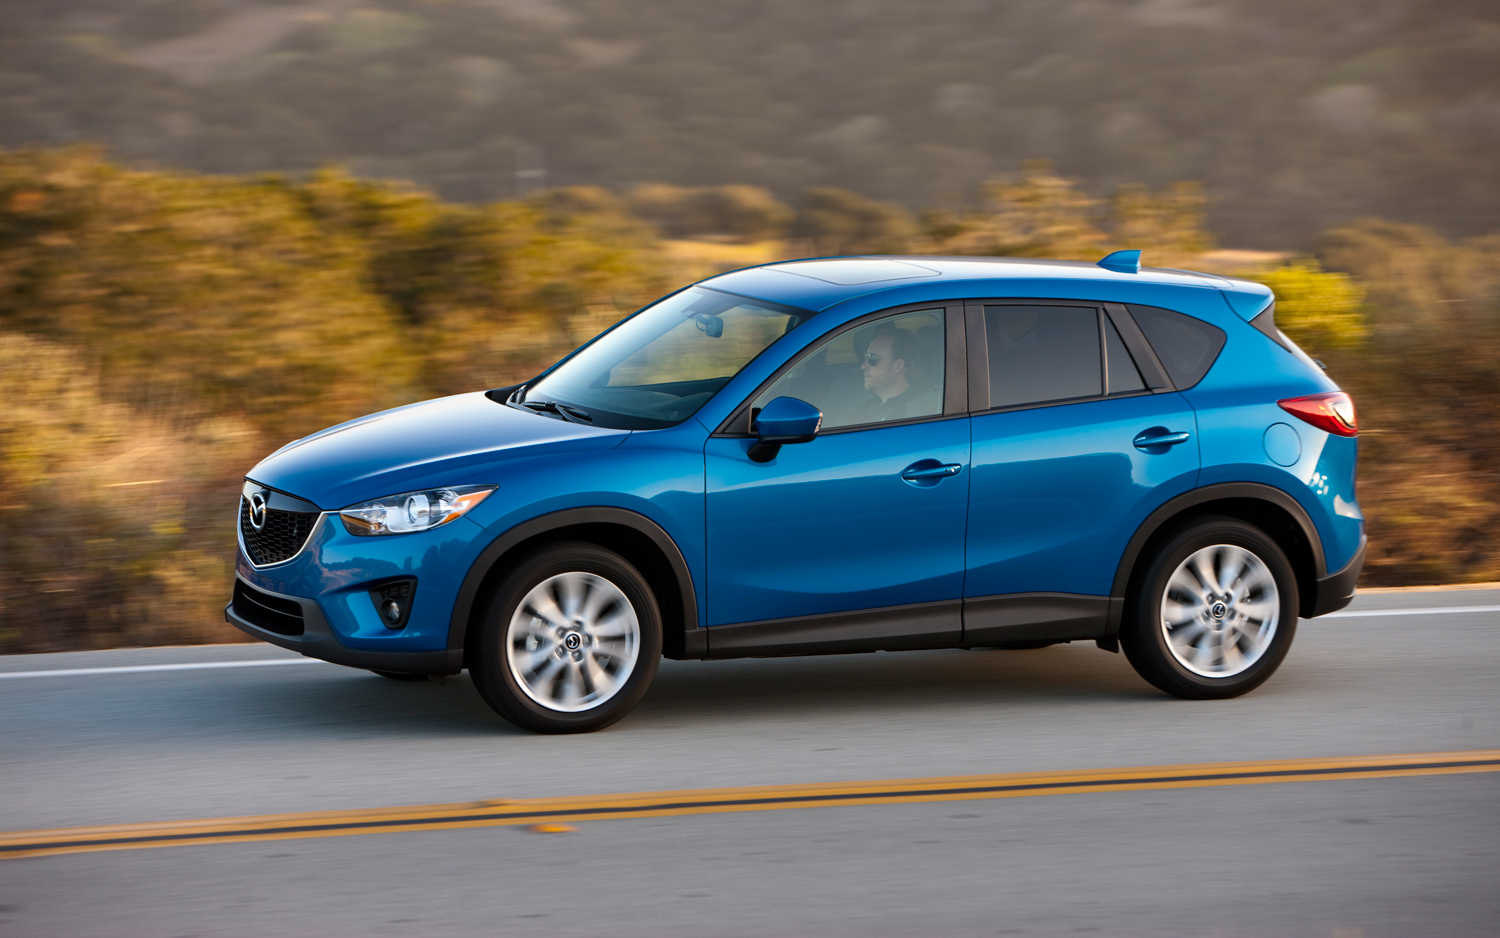 2014 Mazda Cx 5 Gets 185 Hp 2 5l I 4 New Cars Reviews